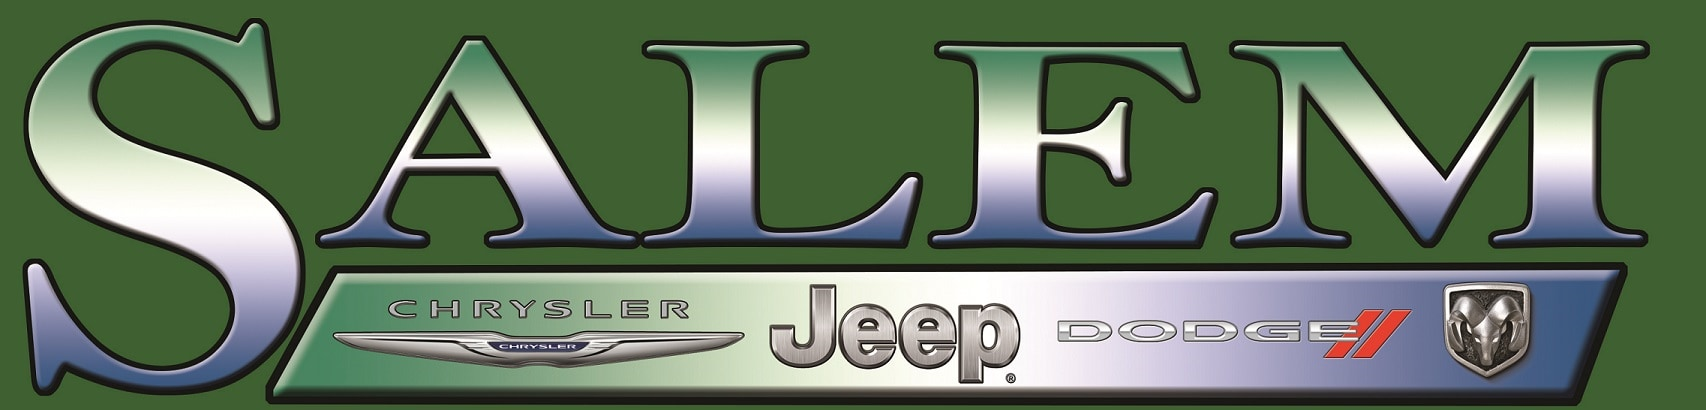 salem chrysler jeep dodge. Cars Review. Best American Auto & Cars Review